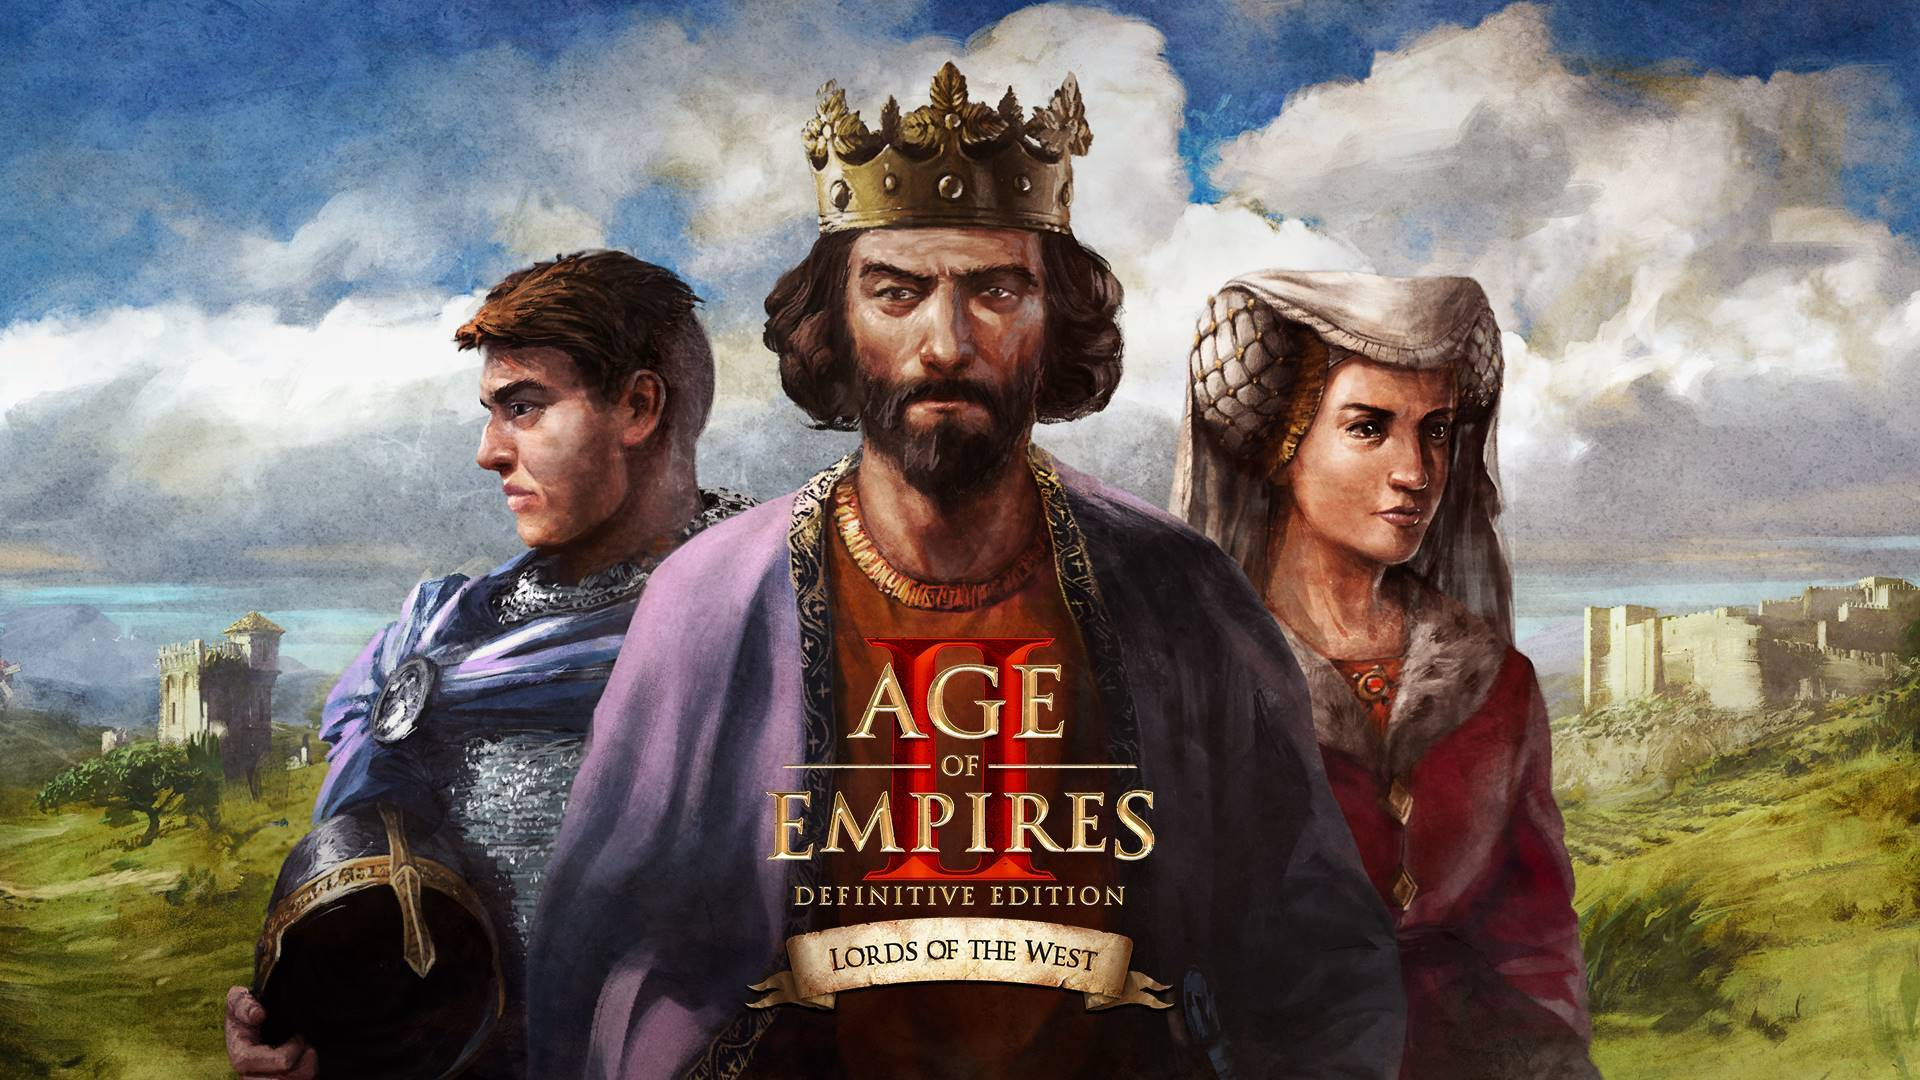 Age of Empires II: Definitive Edition Lords of the West